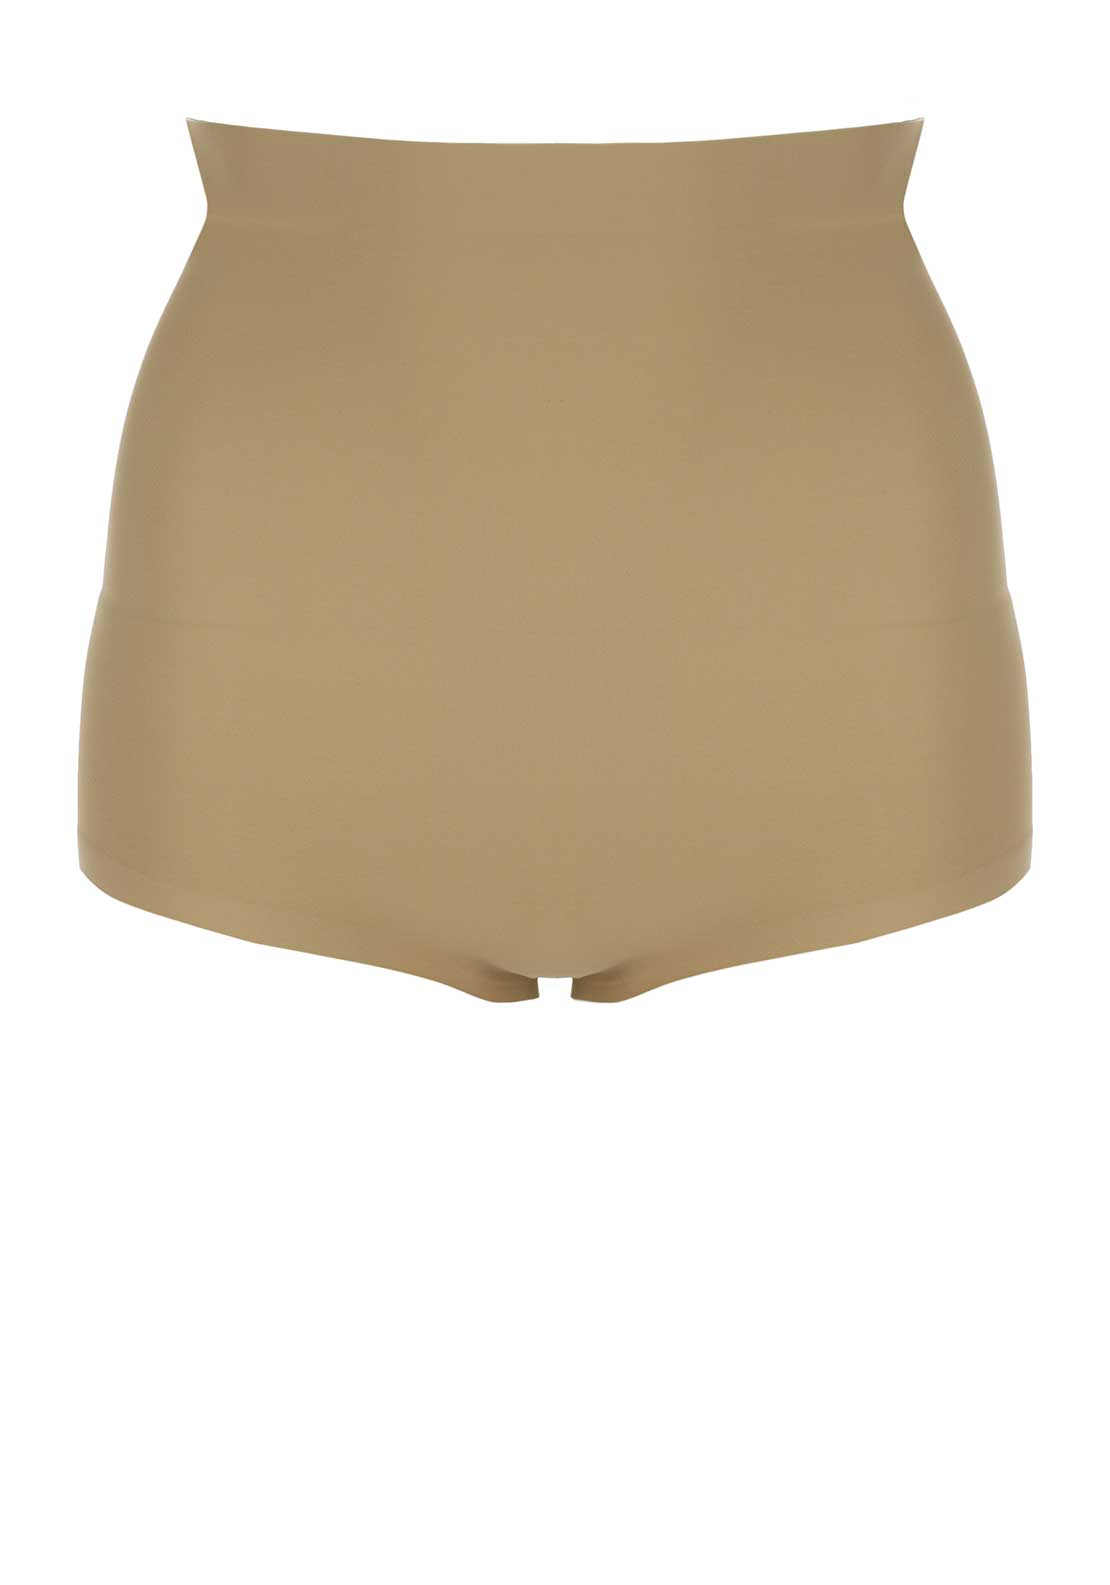 By Wishes Foam Padded High Waist Briefs, Nude